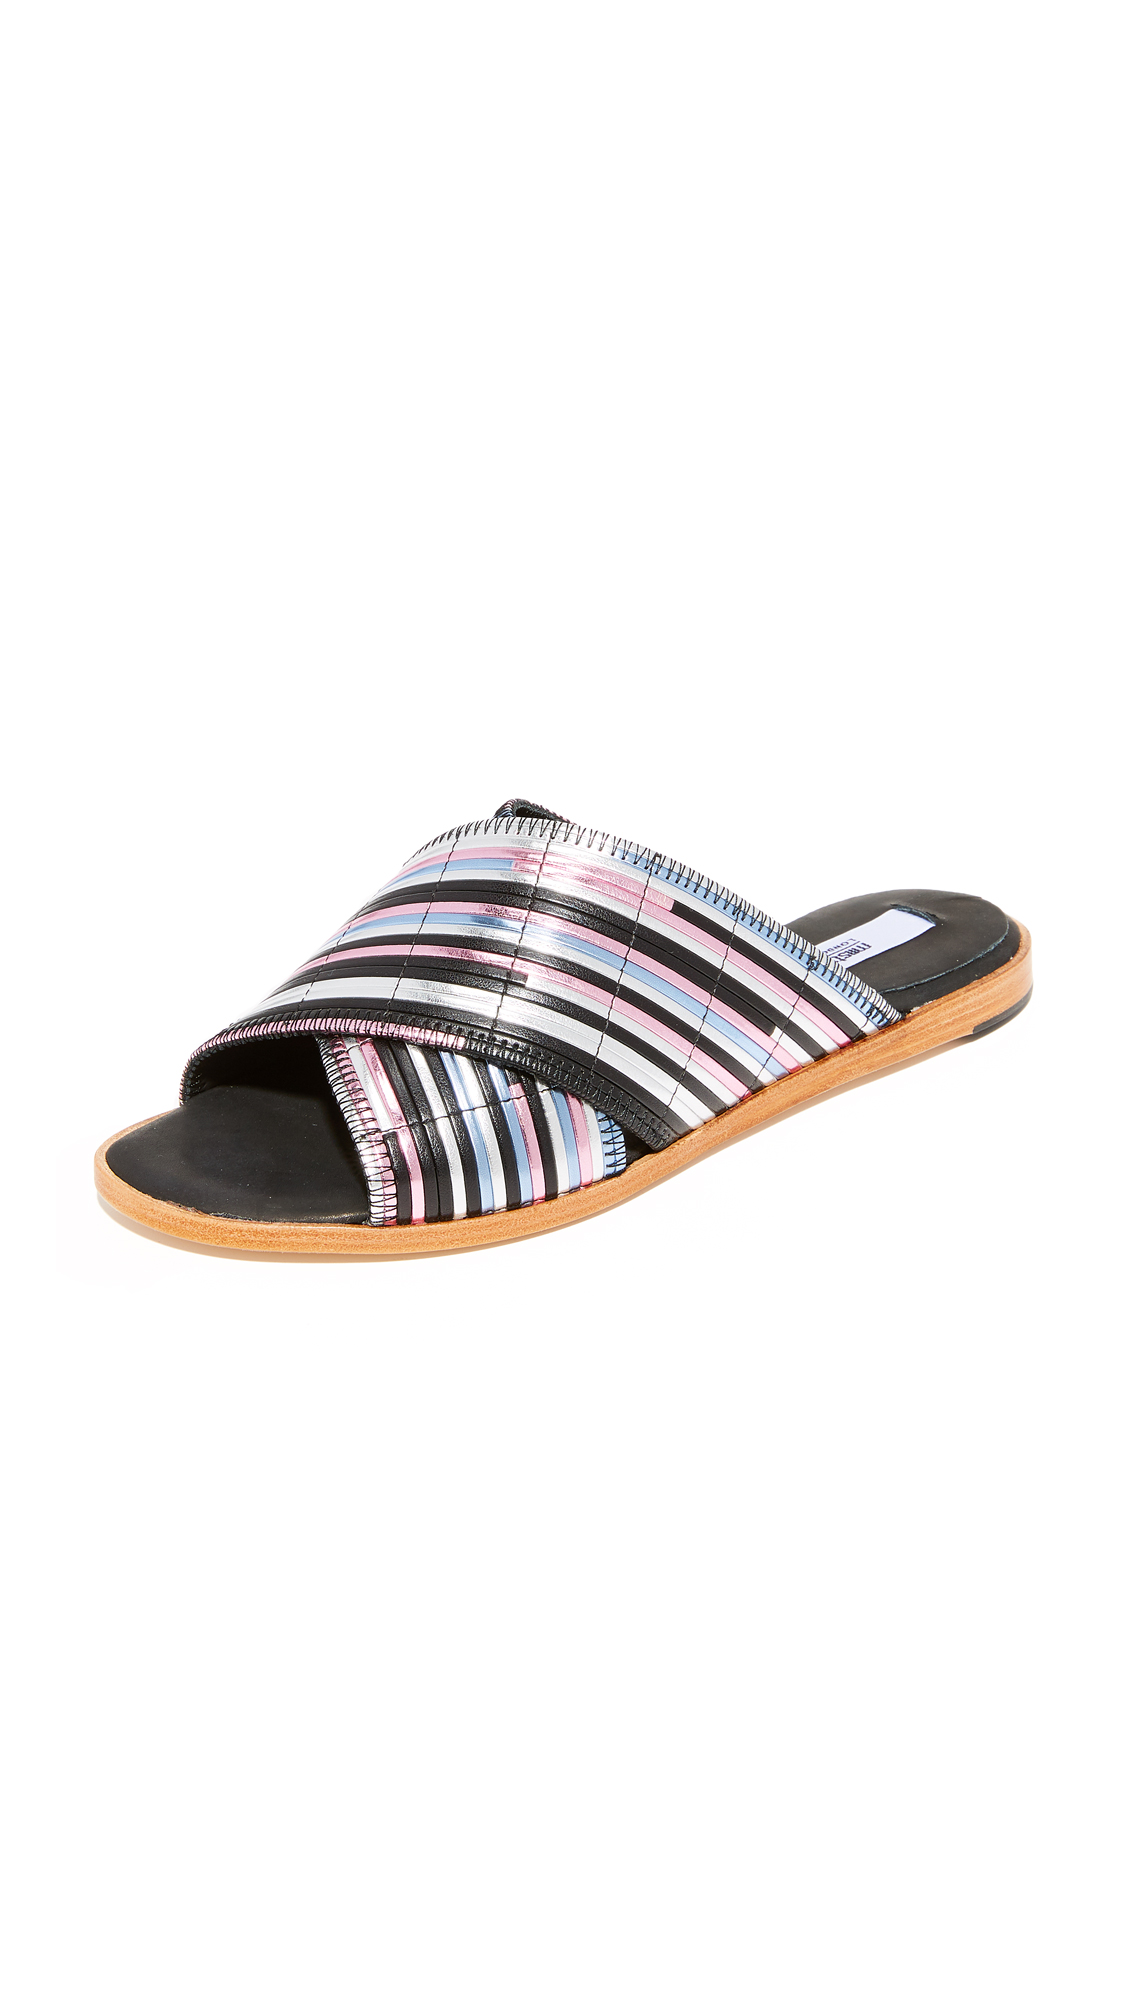 Miista Deb Slides - Black